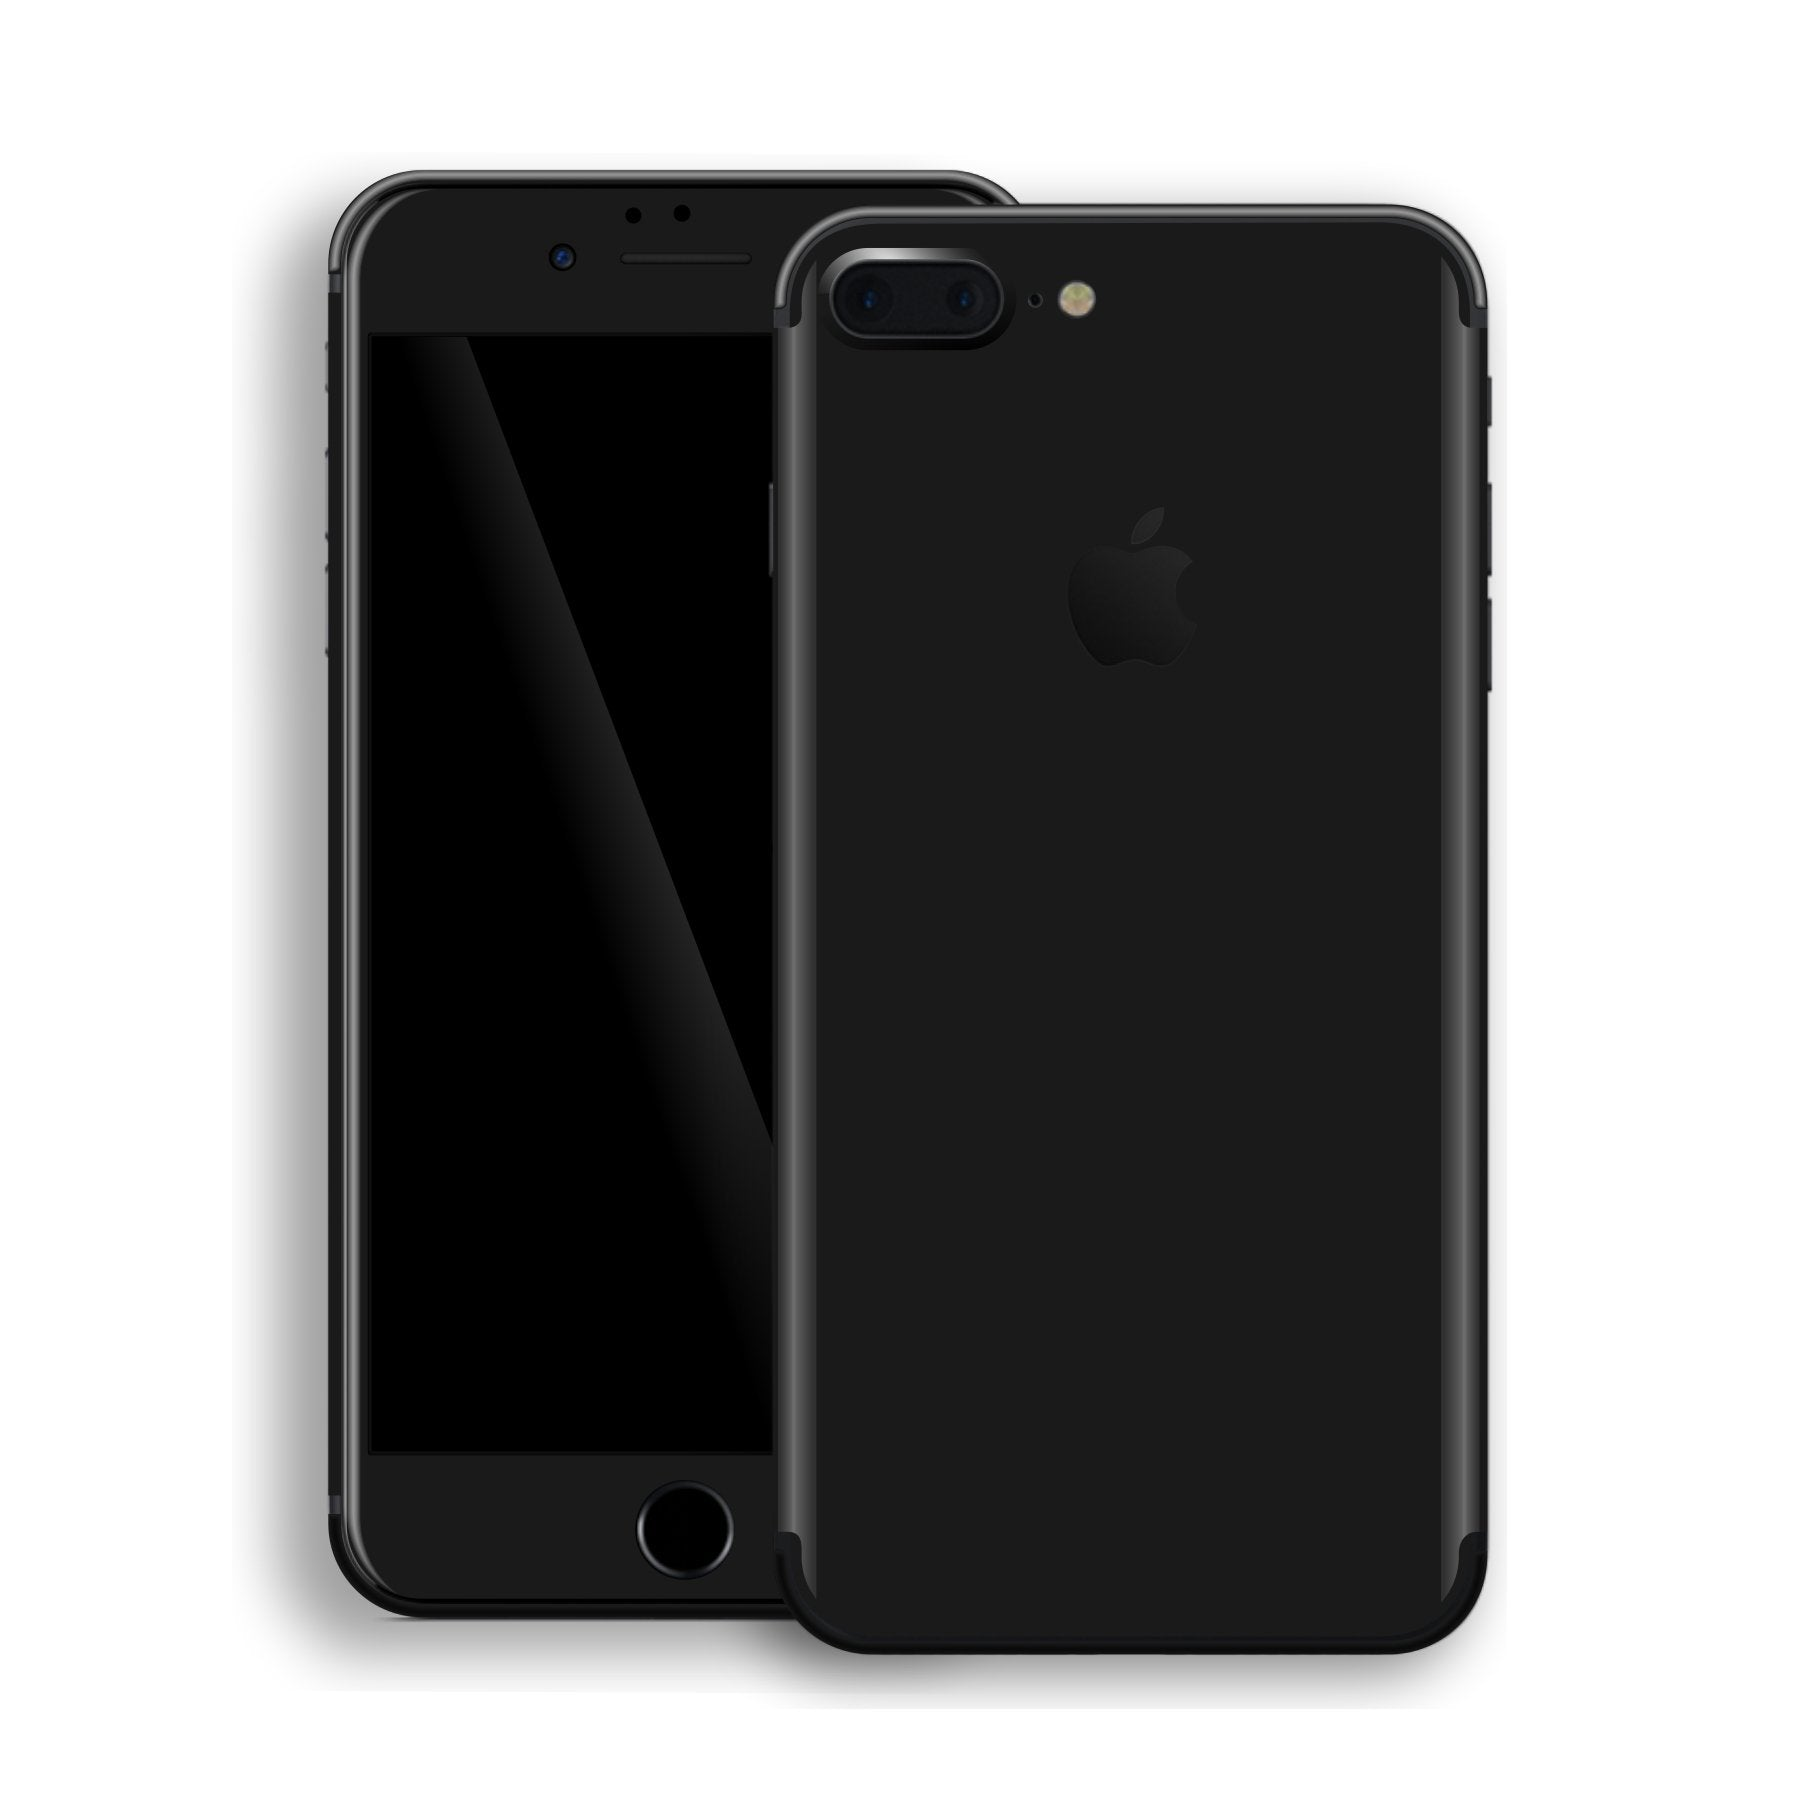 iPhone 8 PLUS Luxuria JET BLACK High Gloss Finish Skin Wrap Decal Protector | EasySkinz